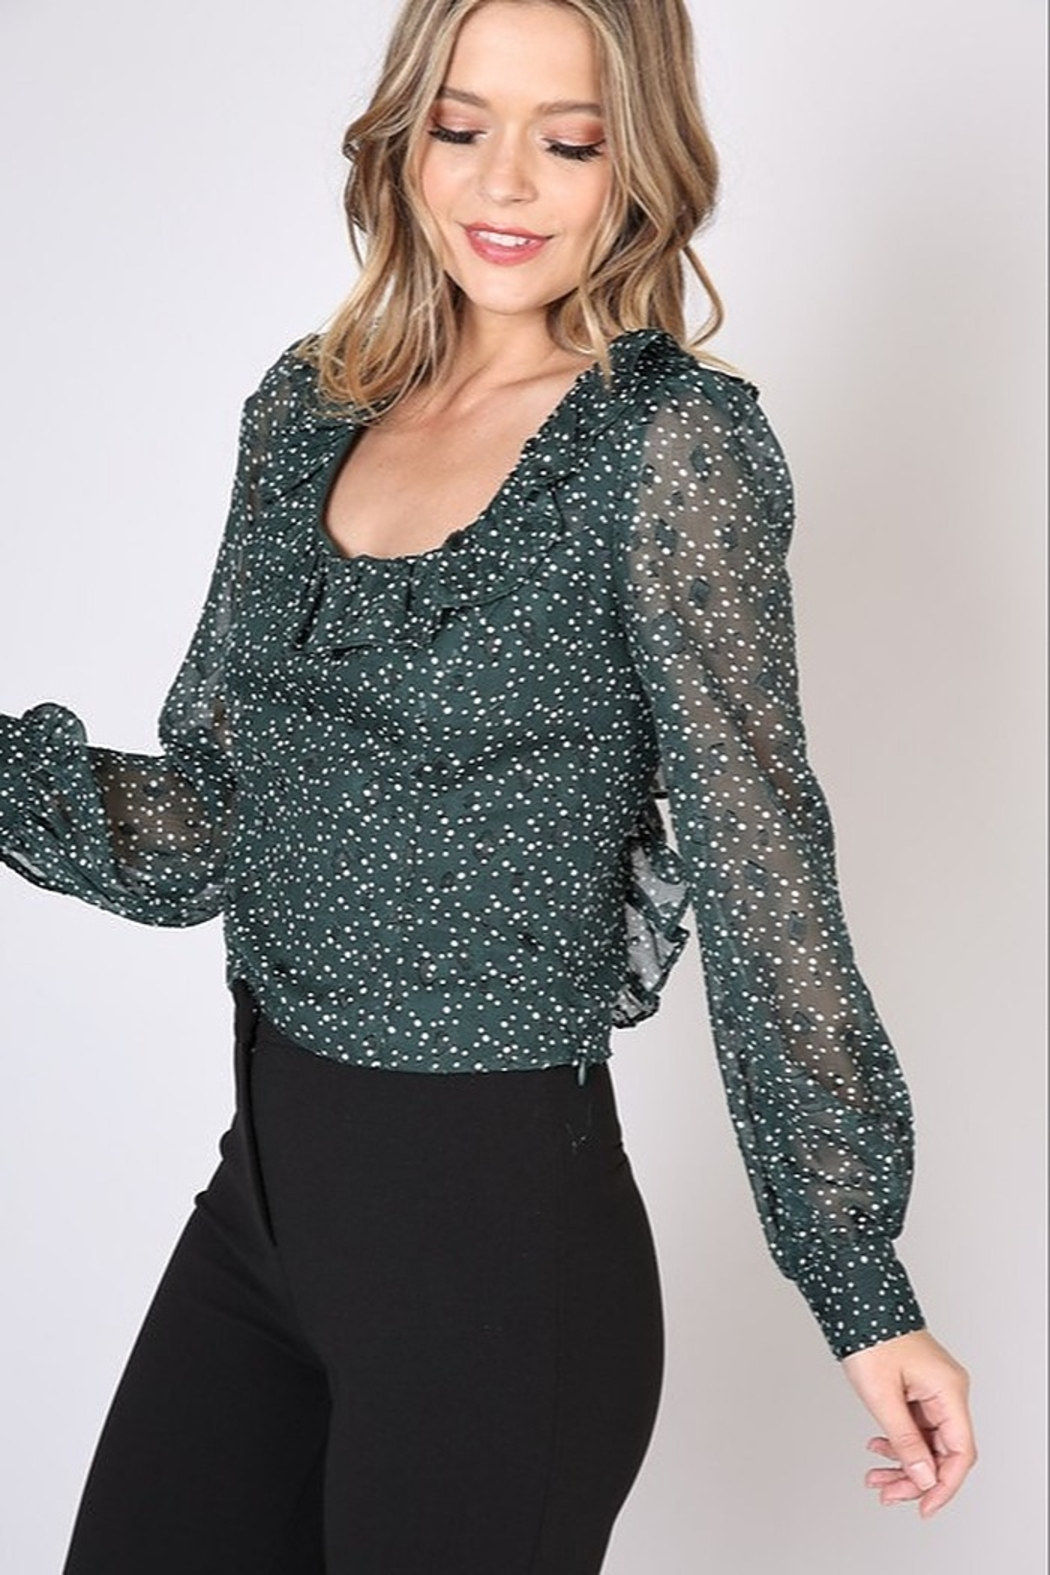 Do + Be  Square Neck Polka Dot Top - Side Cropped Image